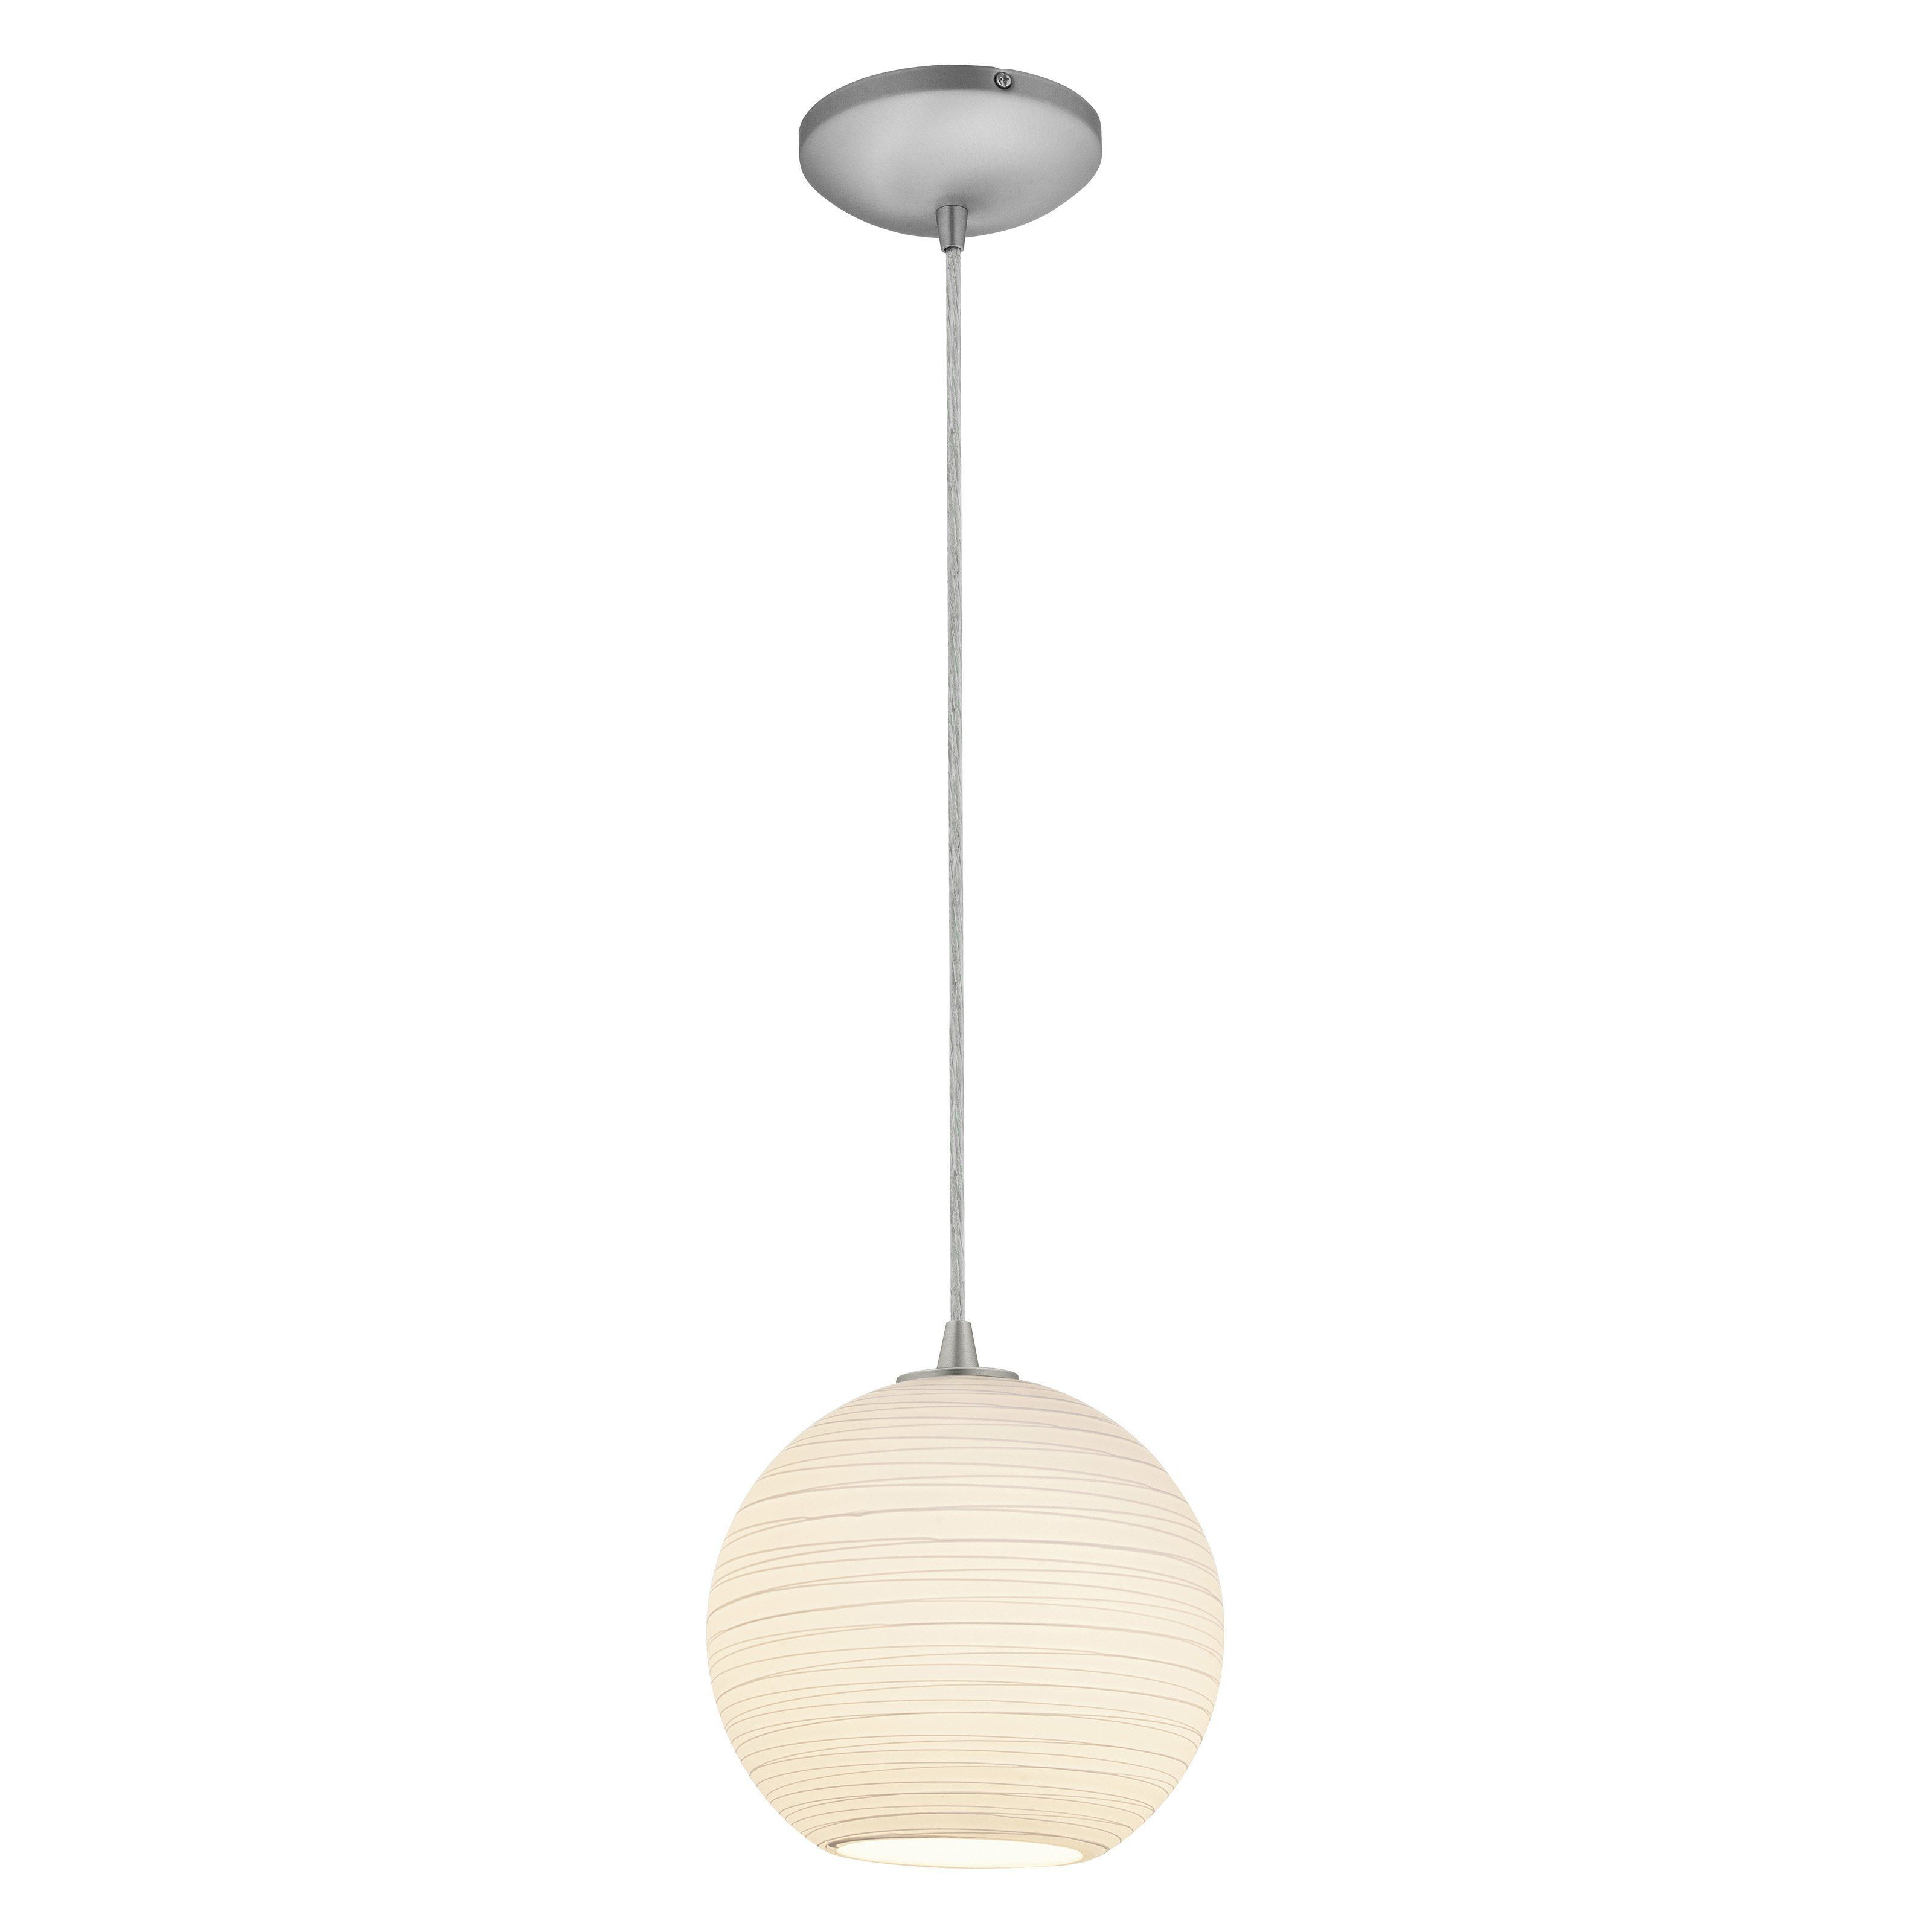 subway design bulb tile star creative shade stunning pendant contemporary ceiling unique lamp globe vintage edison the round industrial shape lights and lighting quality solar light pipe fixtures color elegant home glass drum fixture hand kitchen with changing outdoor commercial blown